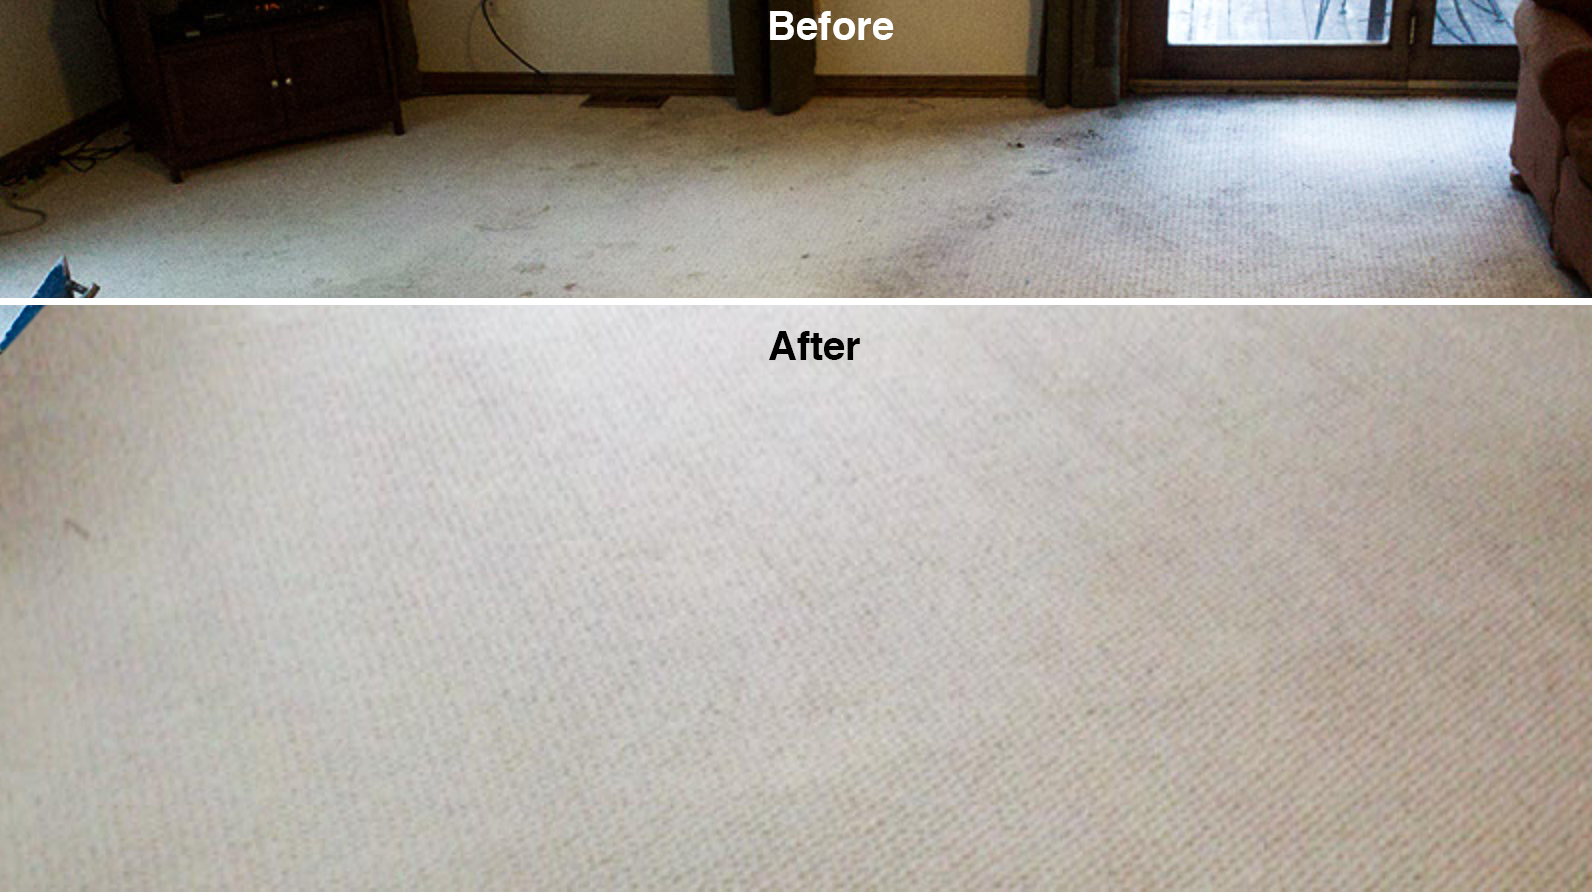 jakes carpet and upholstery cleaning results 7